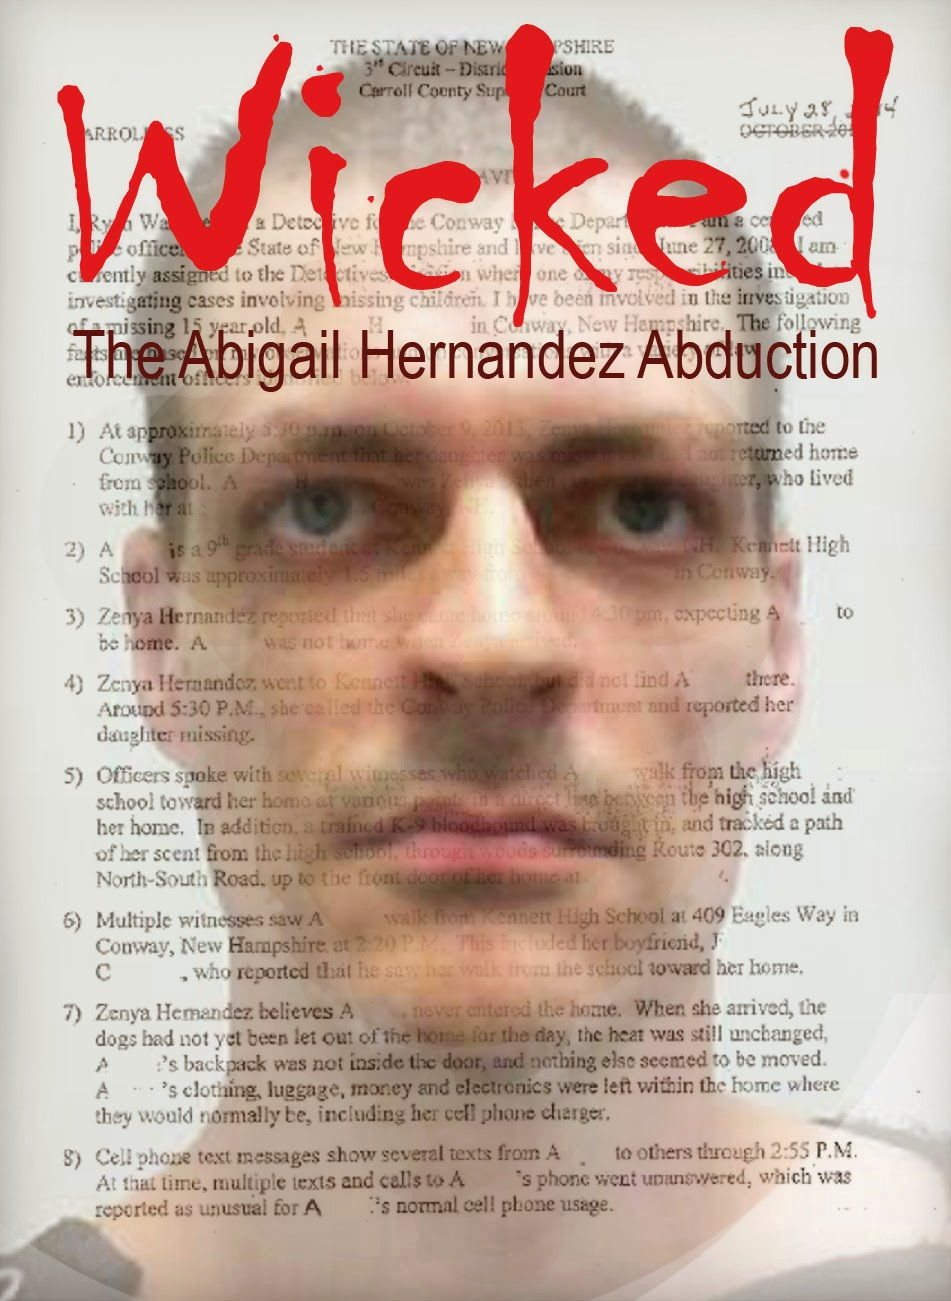 http://www.crimemagazine.com/wicked-abigail-hernandez-abduction